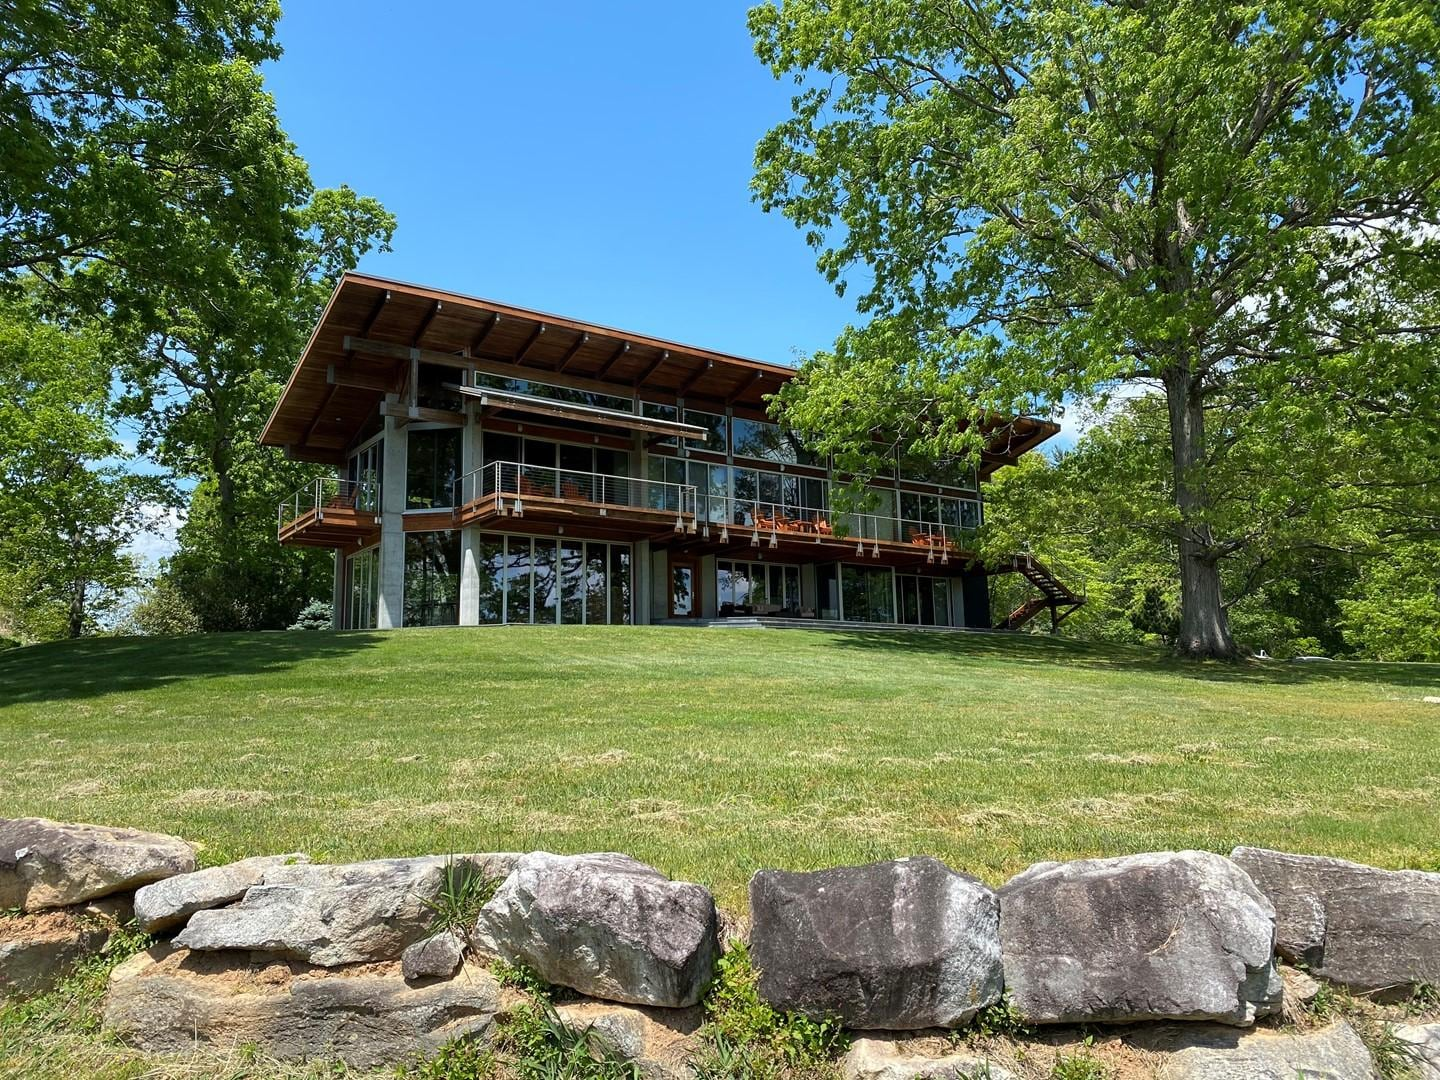 Property Image 1 - One-of-a-Kind, Majestic Mountain Lodge Retreat